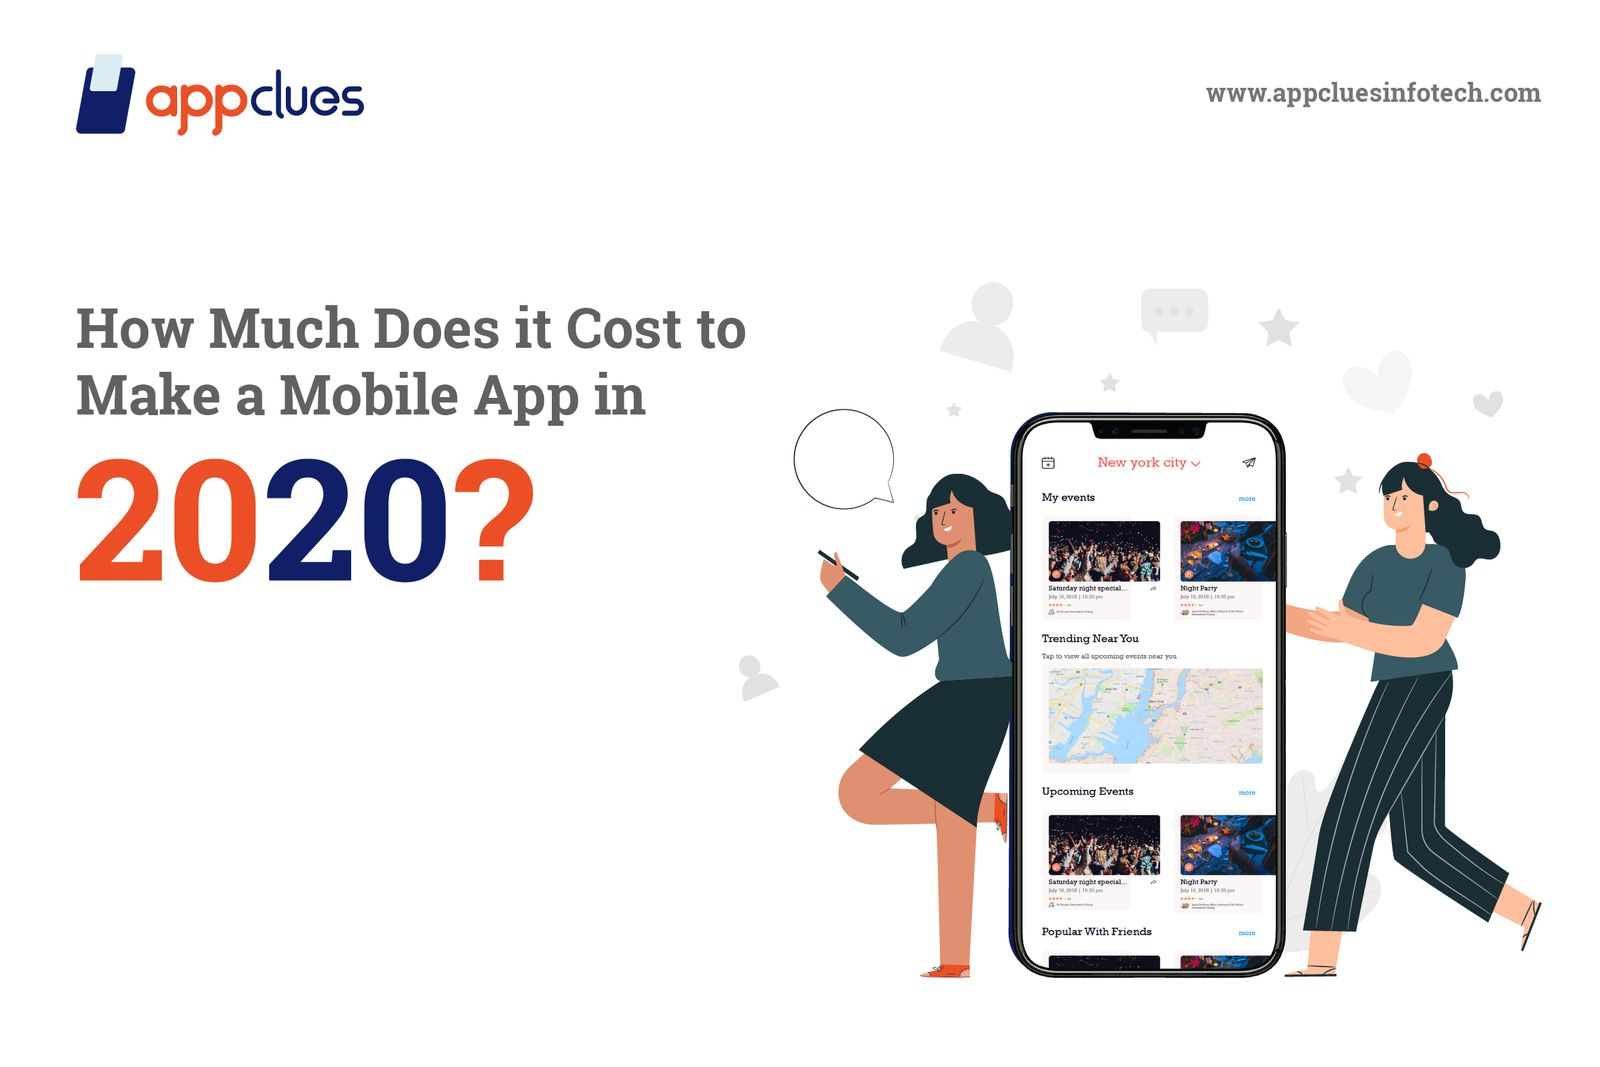 How Much Does it Cost to Make a Mobile App in 2020?